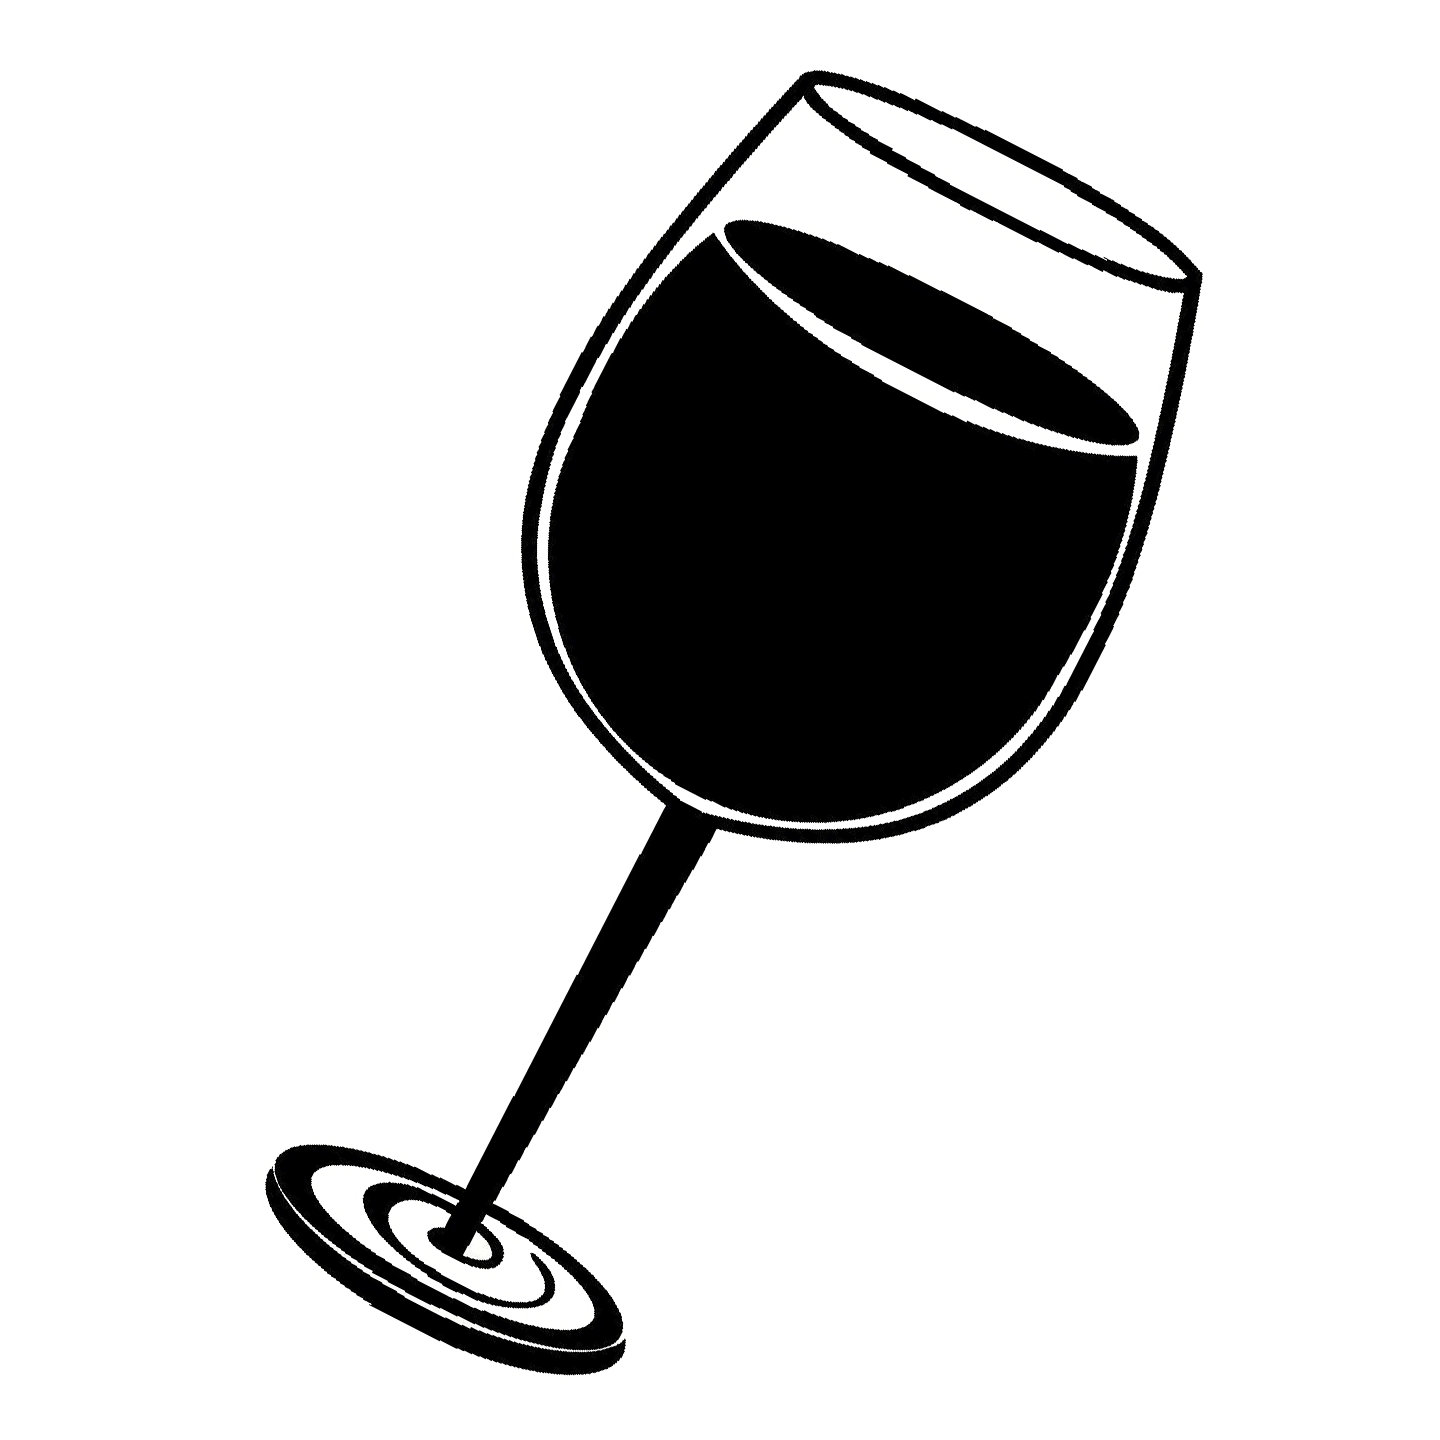 Black And White Wine Glass Png & Free Black And White Wine Glass.png.